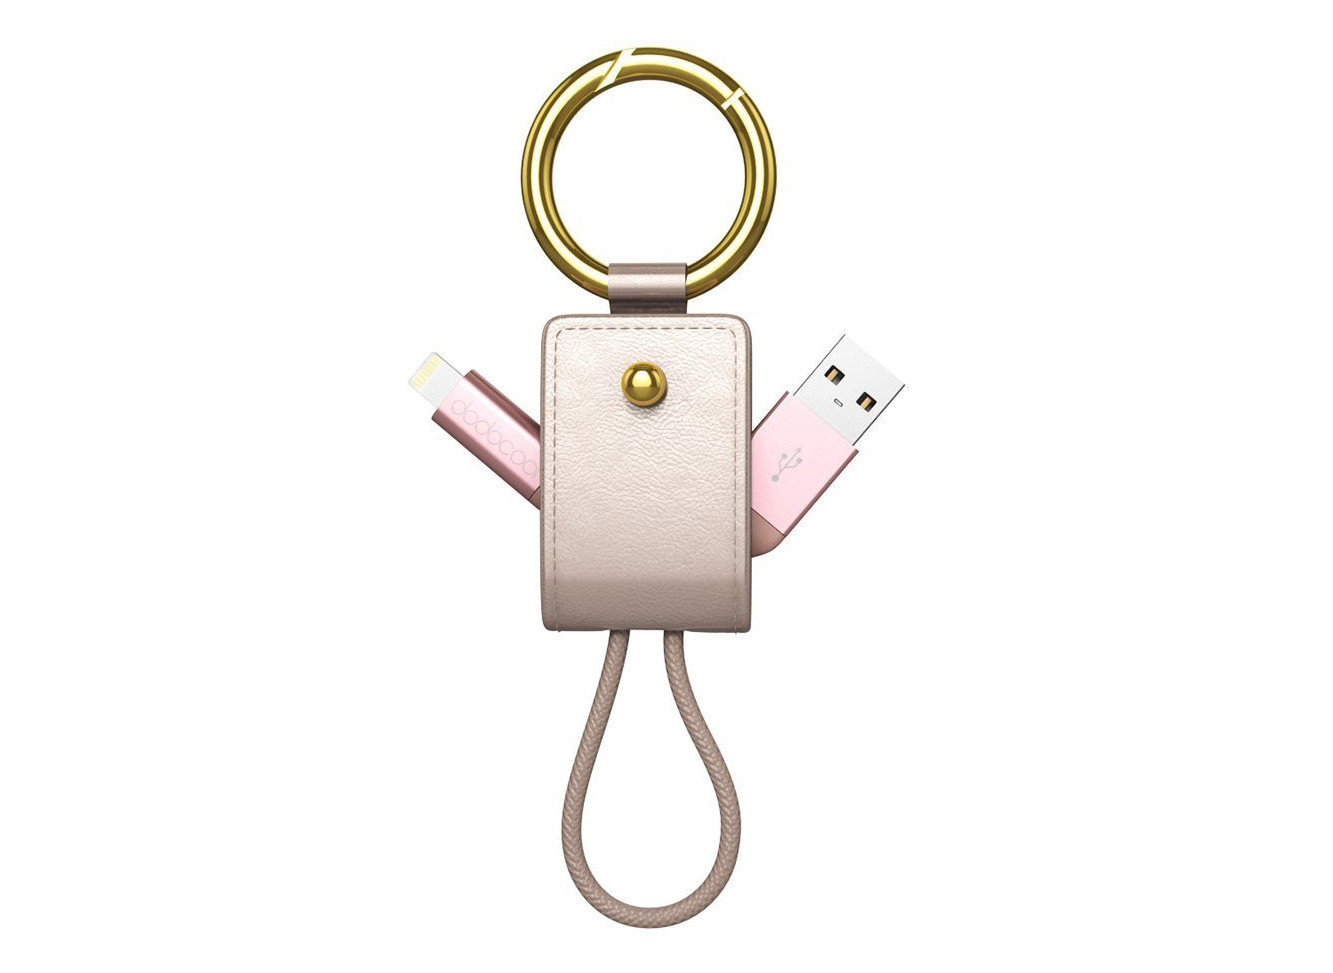 Shop Dodocool Lightning Cable Keychain on Amazon